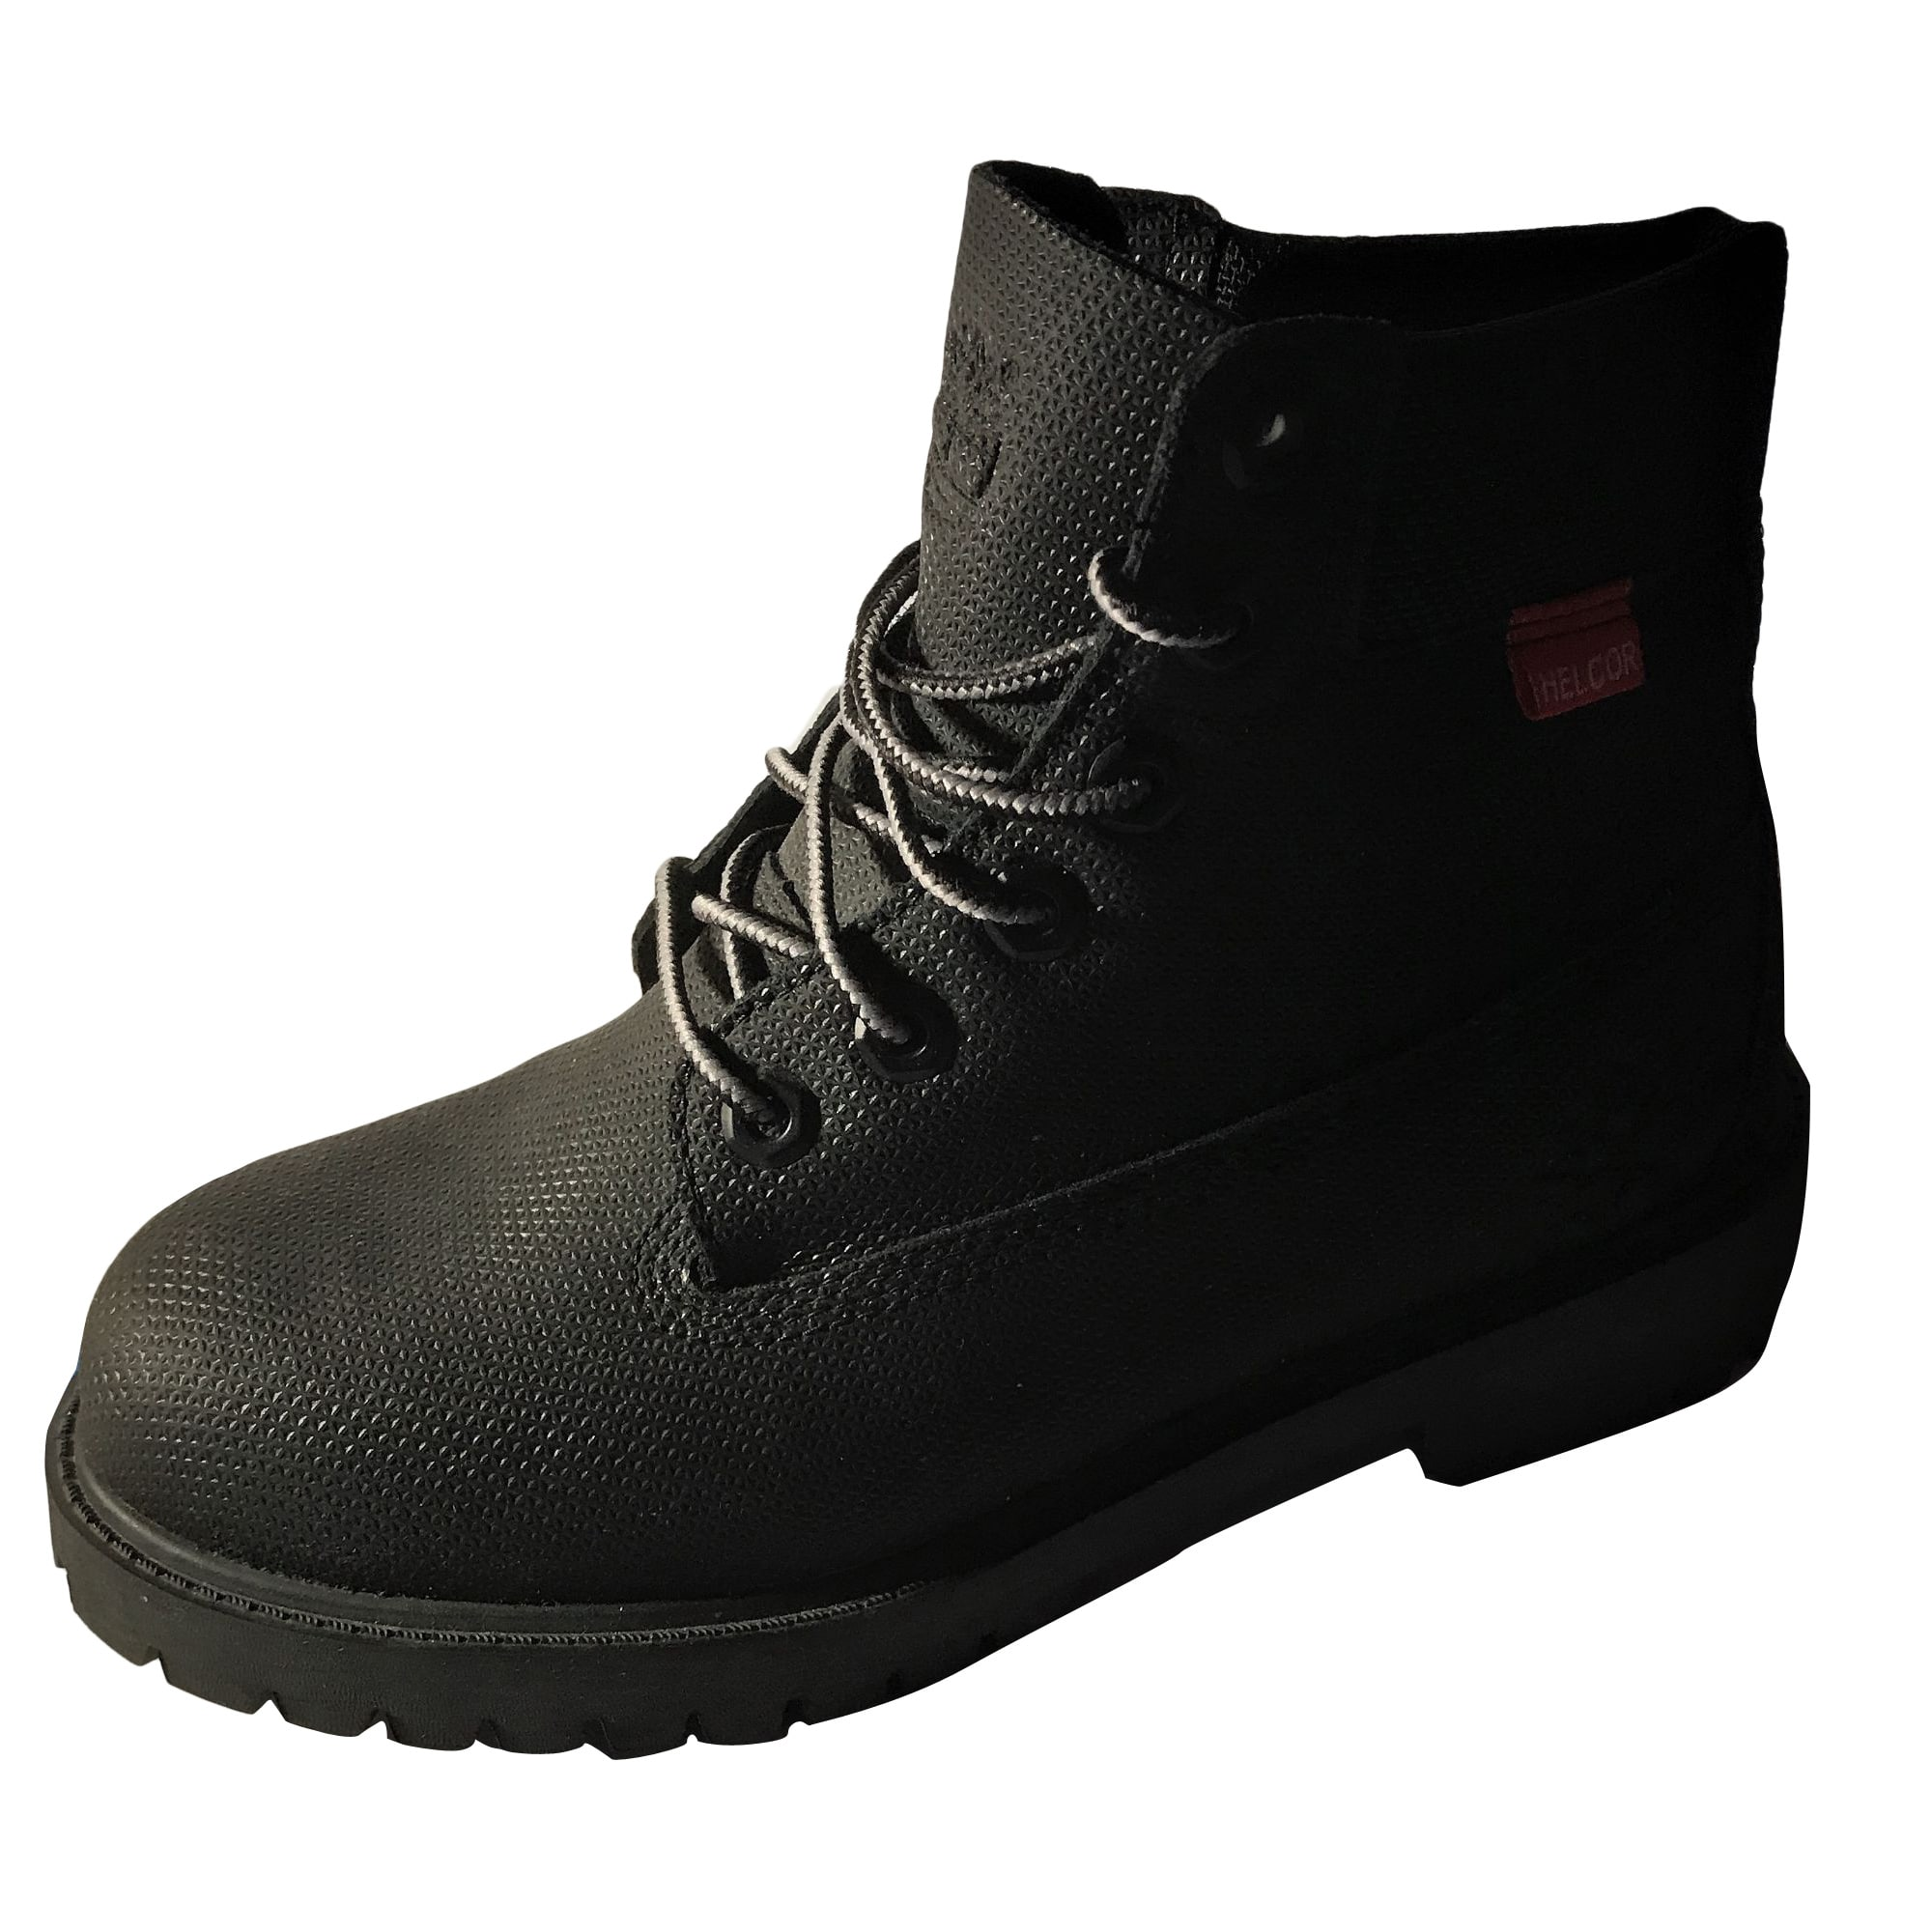 Timberland Amp; Bottines Boots Noir 36 Bottes Low 7998064 Plates F1TclKJ3